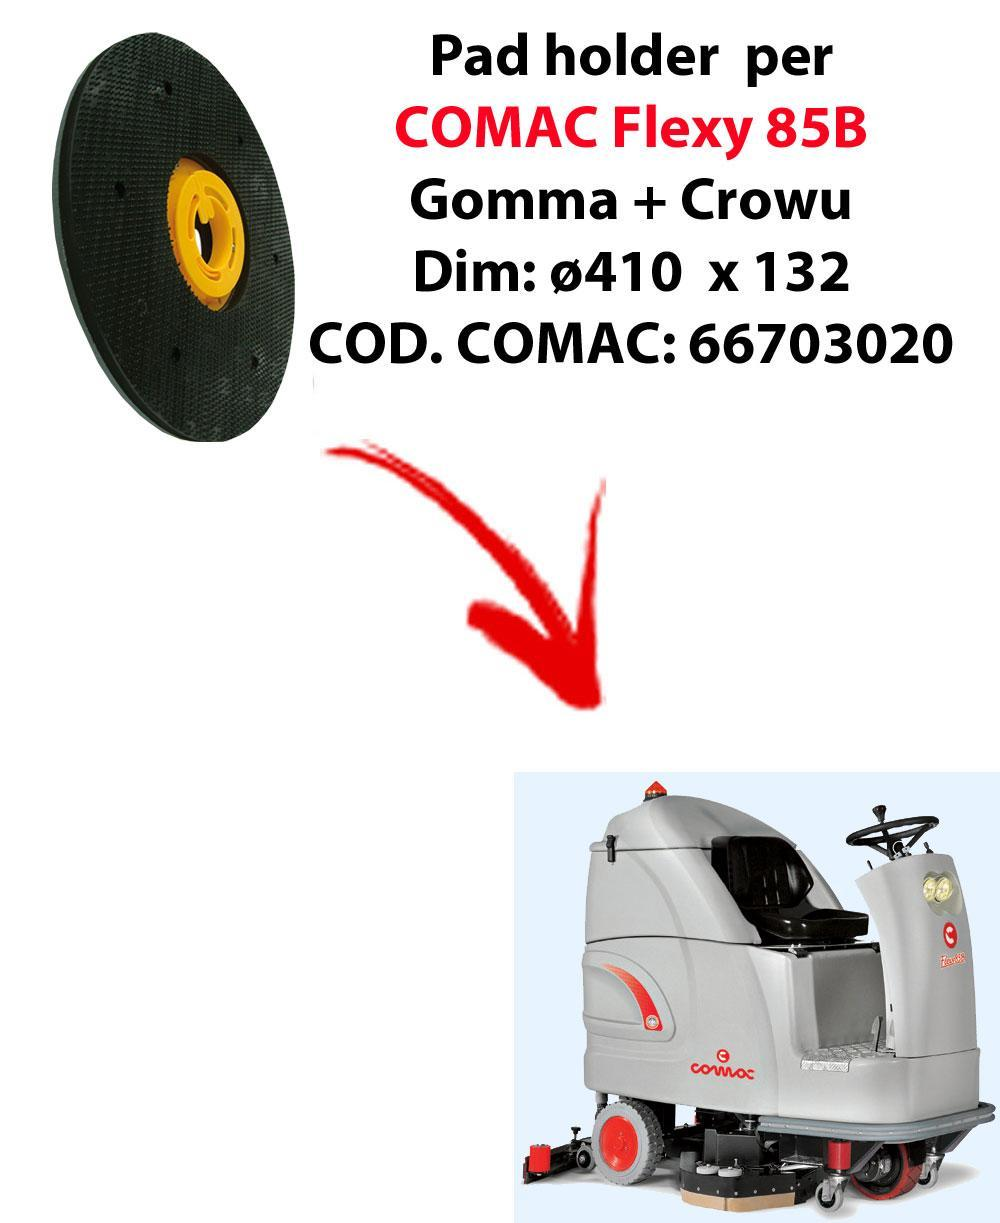 PAD HOLDER for scrubber dryer COMAC Flexy 85B. Code comac: 66703020